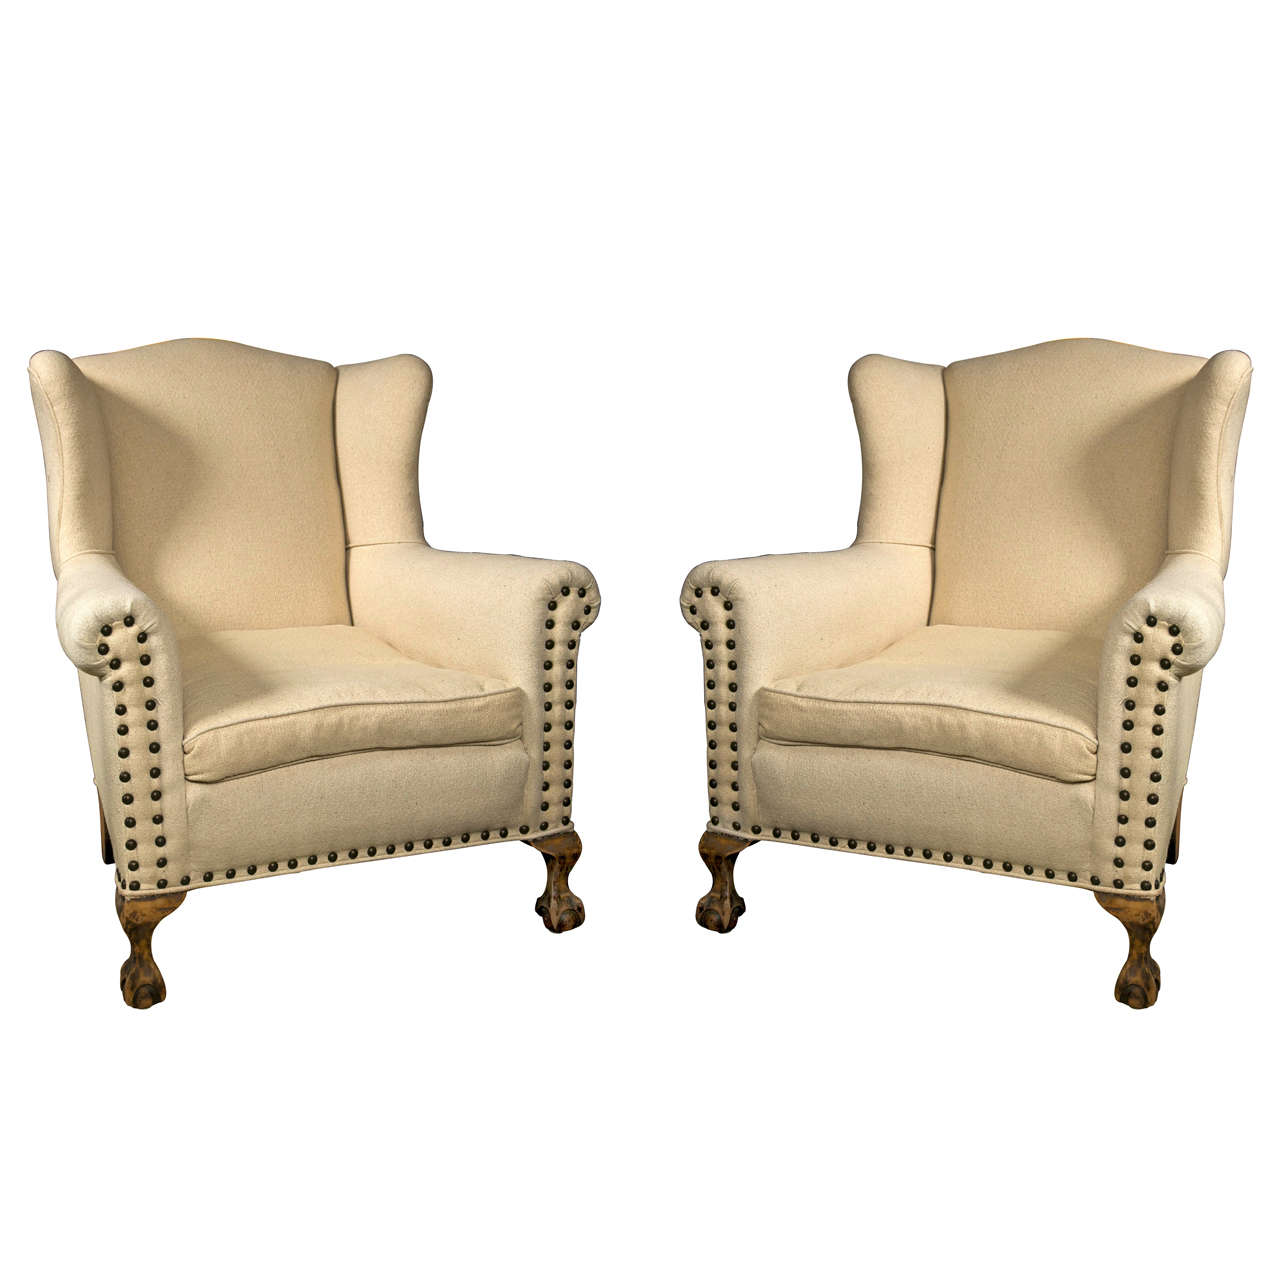 Wingback chairs sale design ideas 1930 s wing chairs at for Chair design terminology